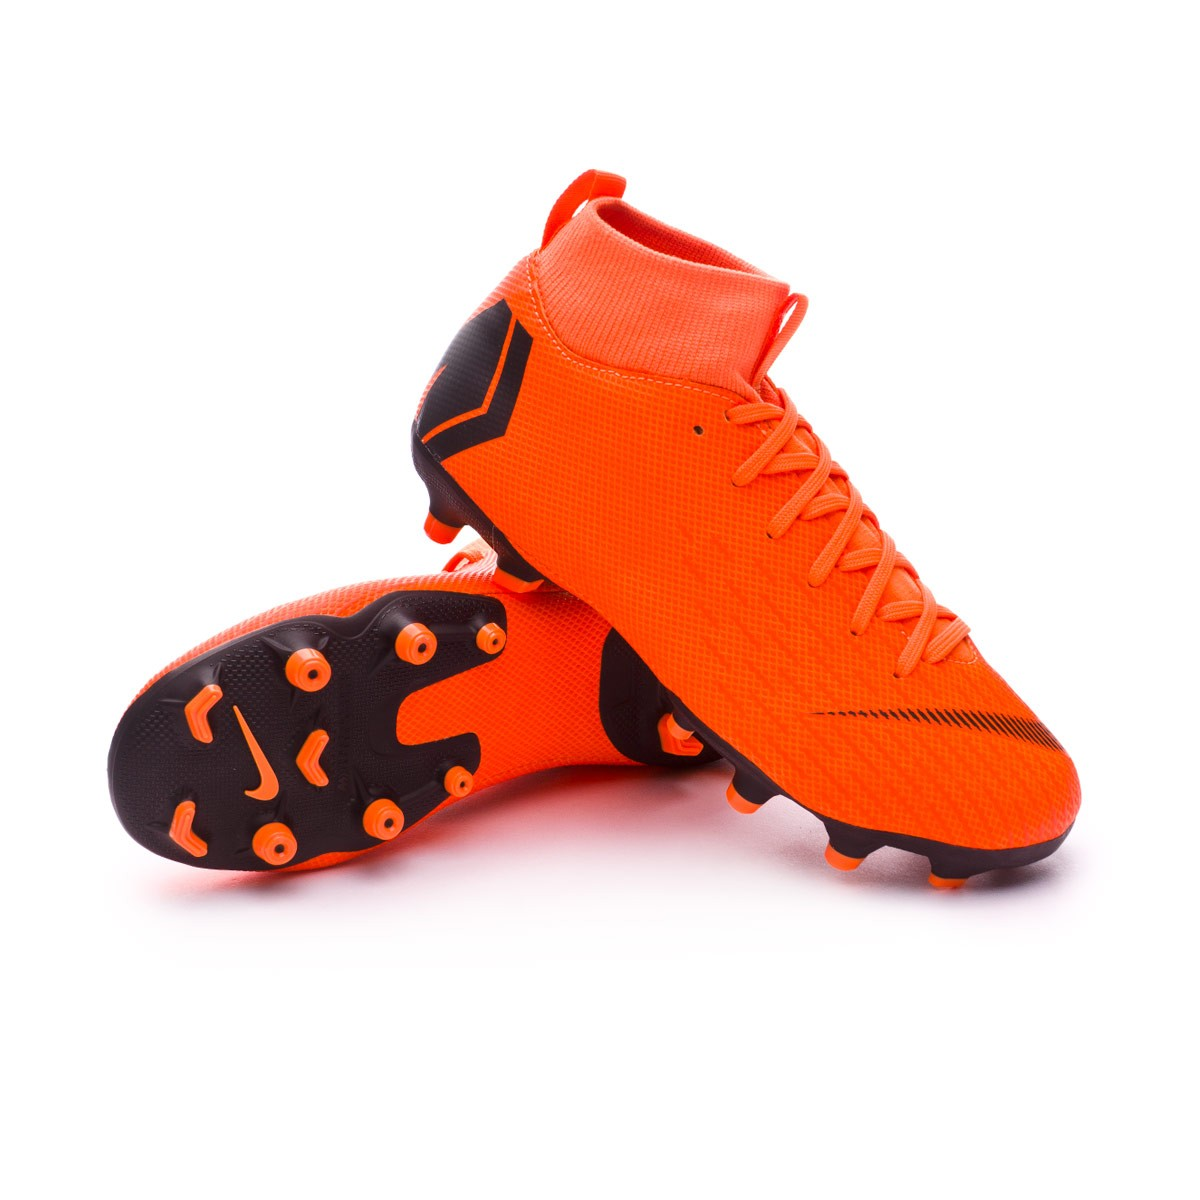 new products 80f62 edd0f Nike Kids Mercurial Superfly VI Academy GS MG Football Boots